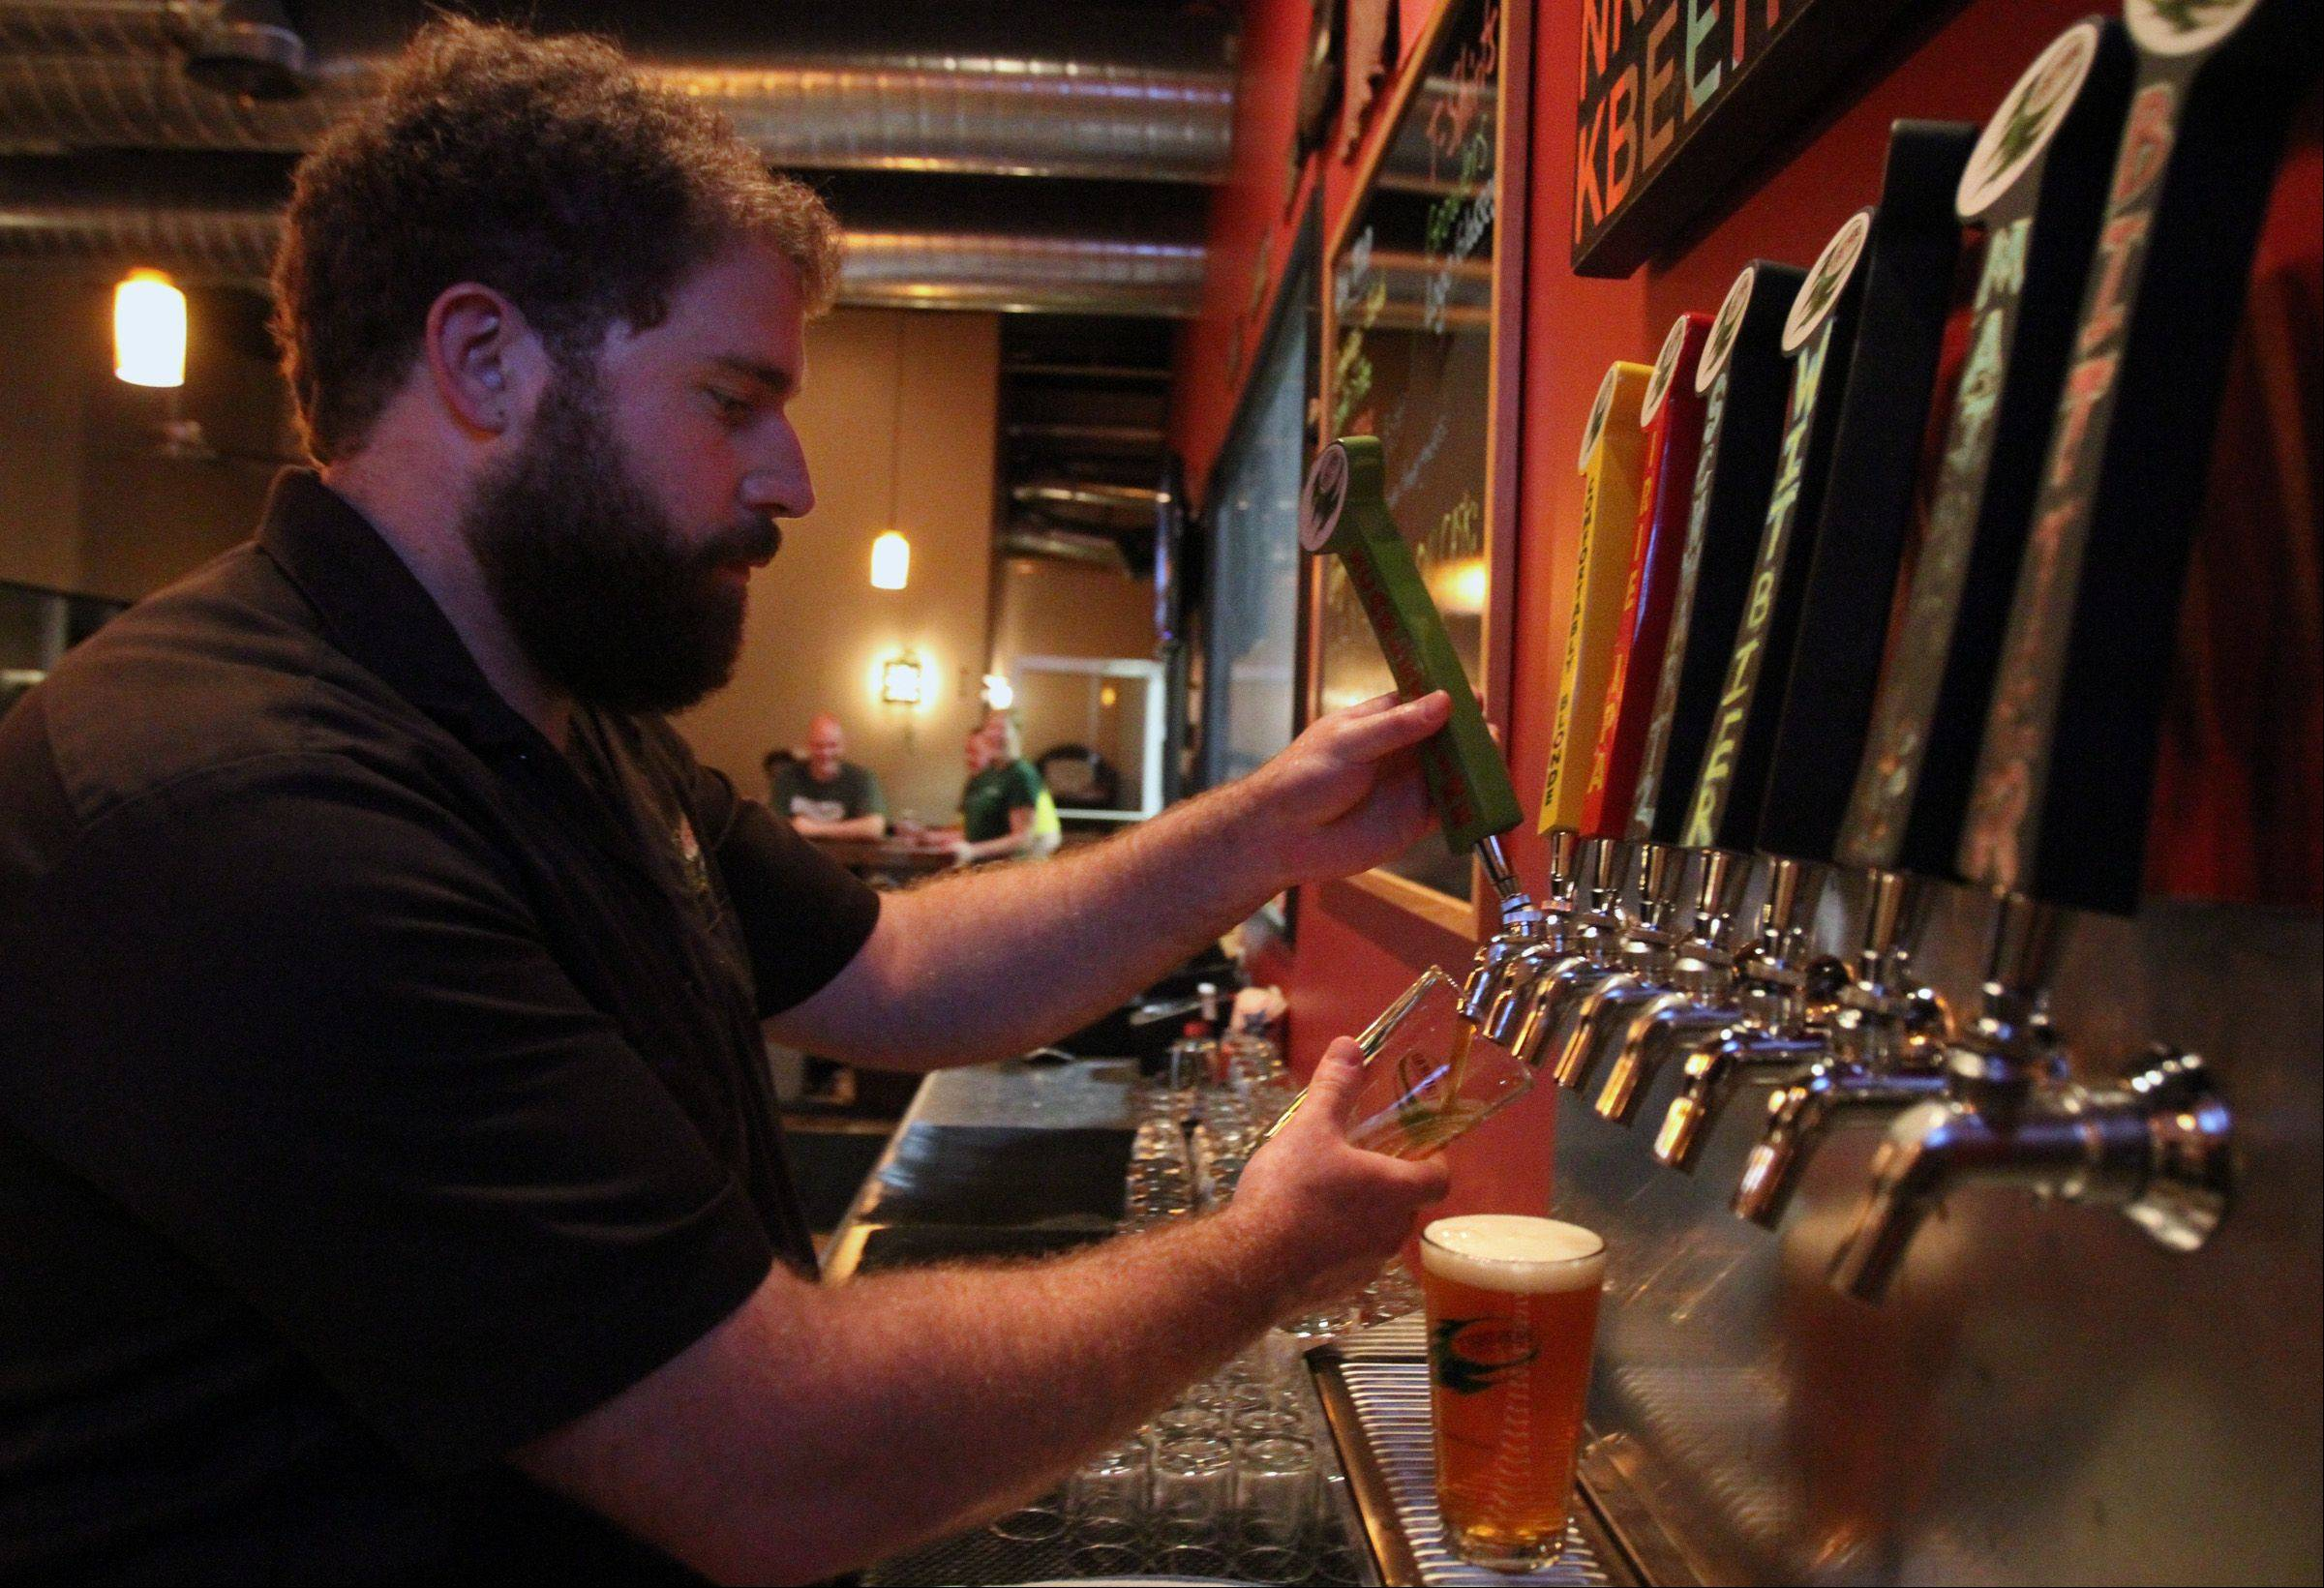 Tighthead Brewing Company tap room manager Patrick Whisler draws a beer at the brewery in Mundelein.